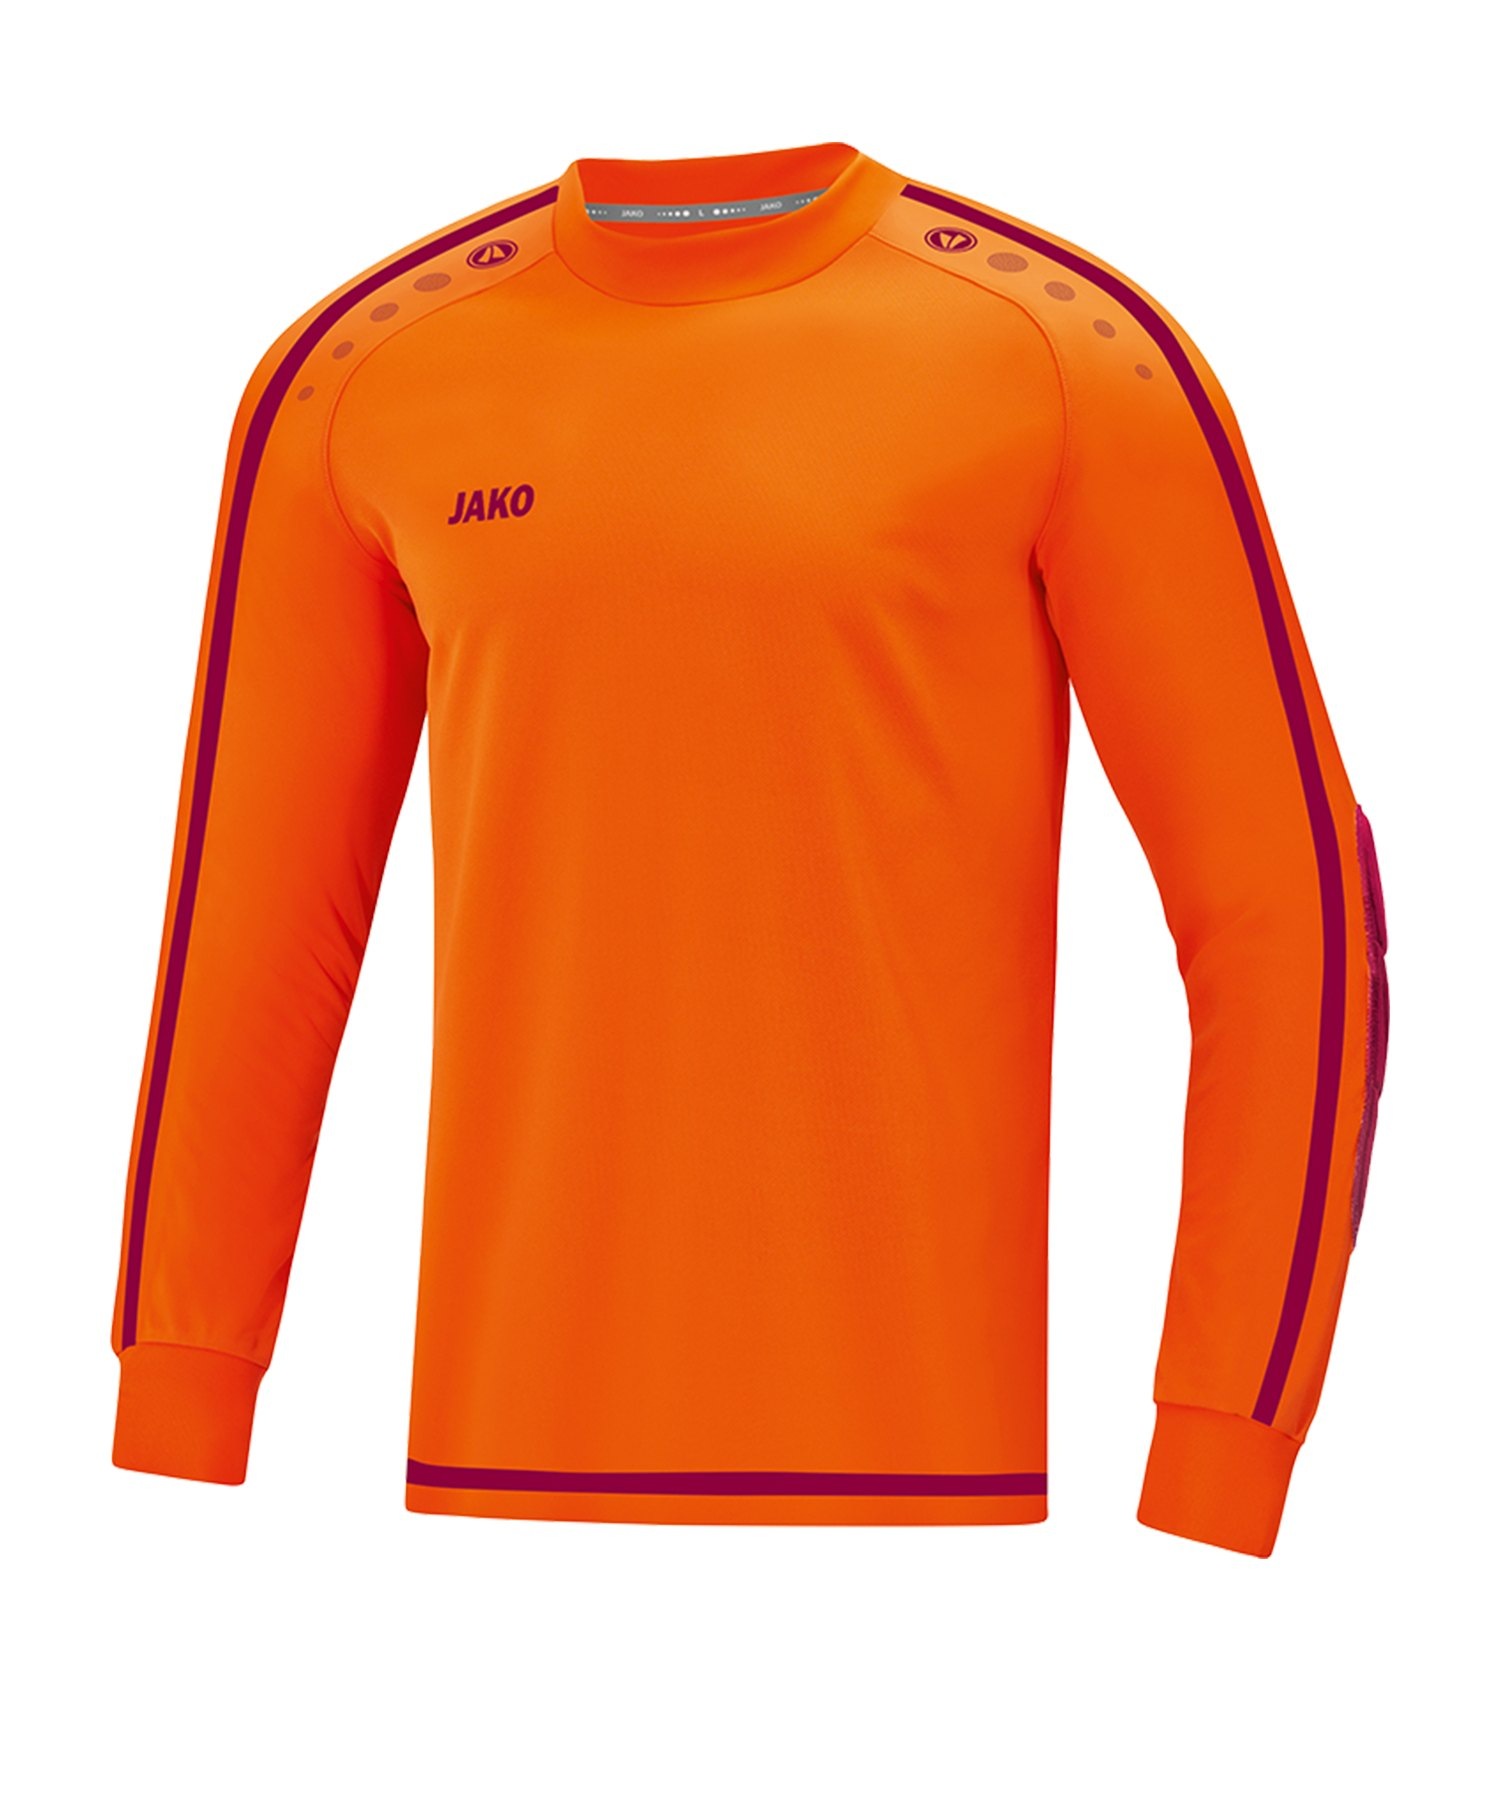 Jako Striker 2.0 Torwarttrikot Orange Rot F19 - Orange